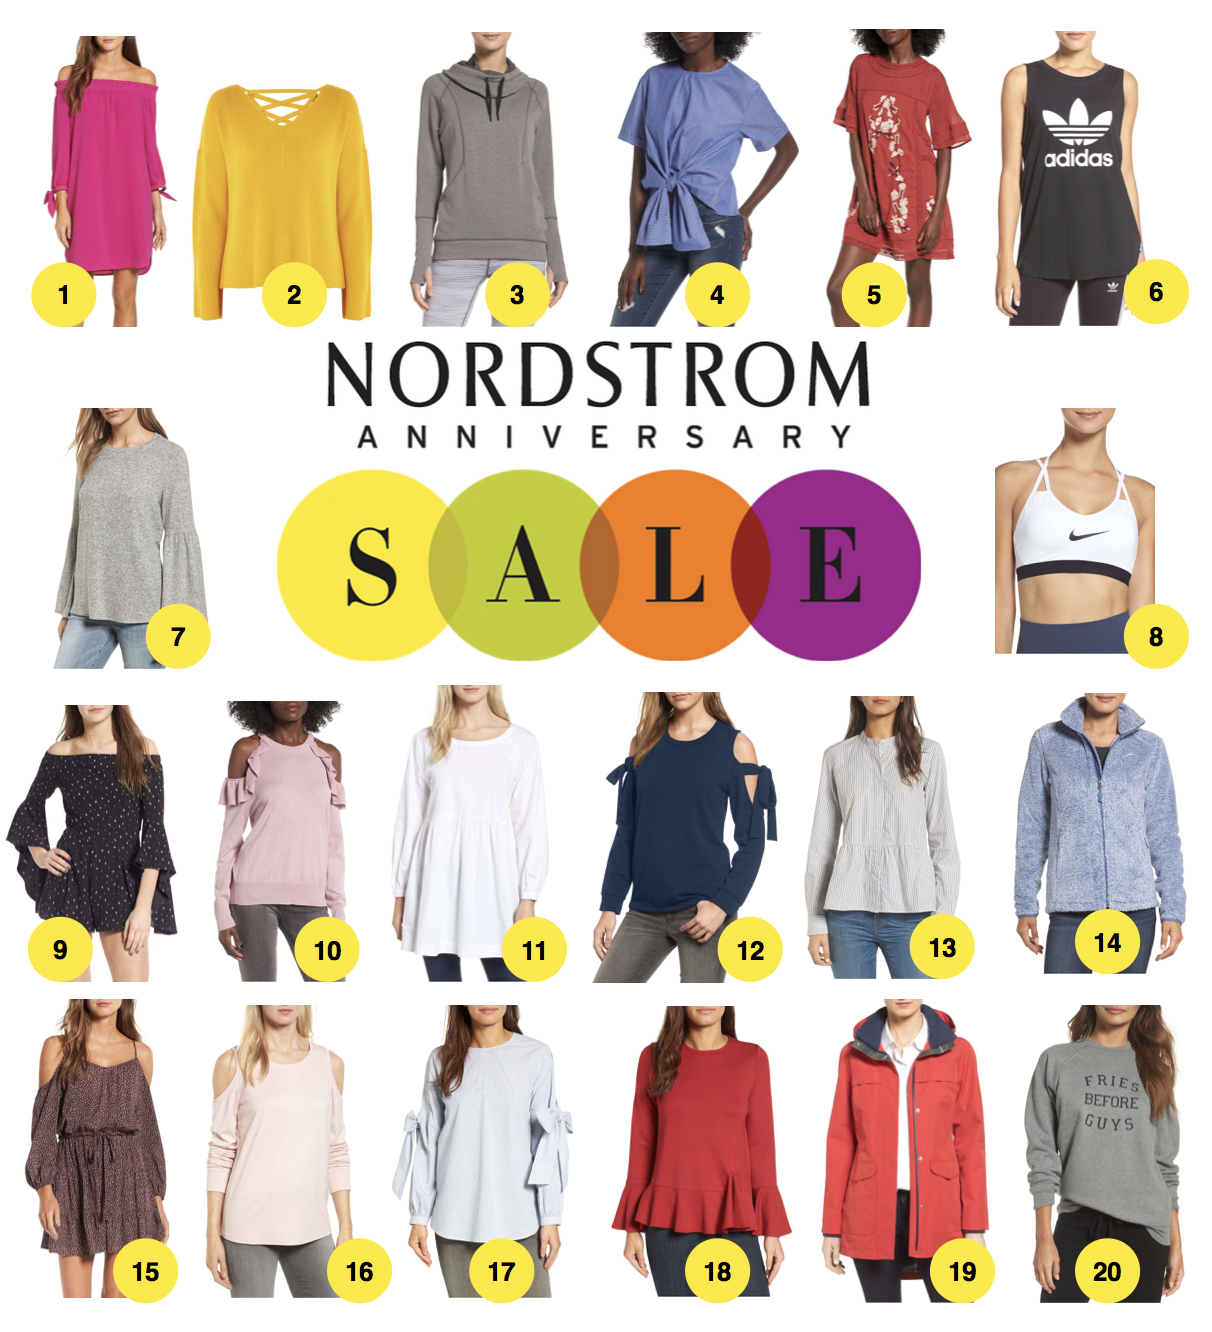 Nordstrom Anniversary Sale 2017 favorite tops, pants, dresses, shoes, accessories and beauty left early access. Shop my favorites on fashion blog daily dose of charm by lauren Lindmark